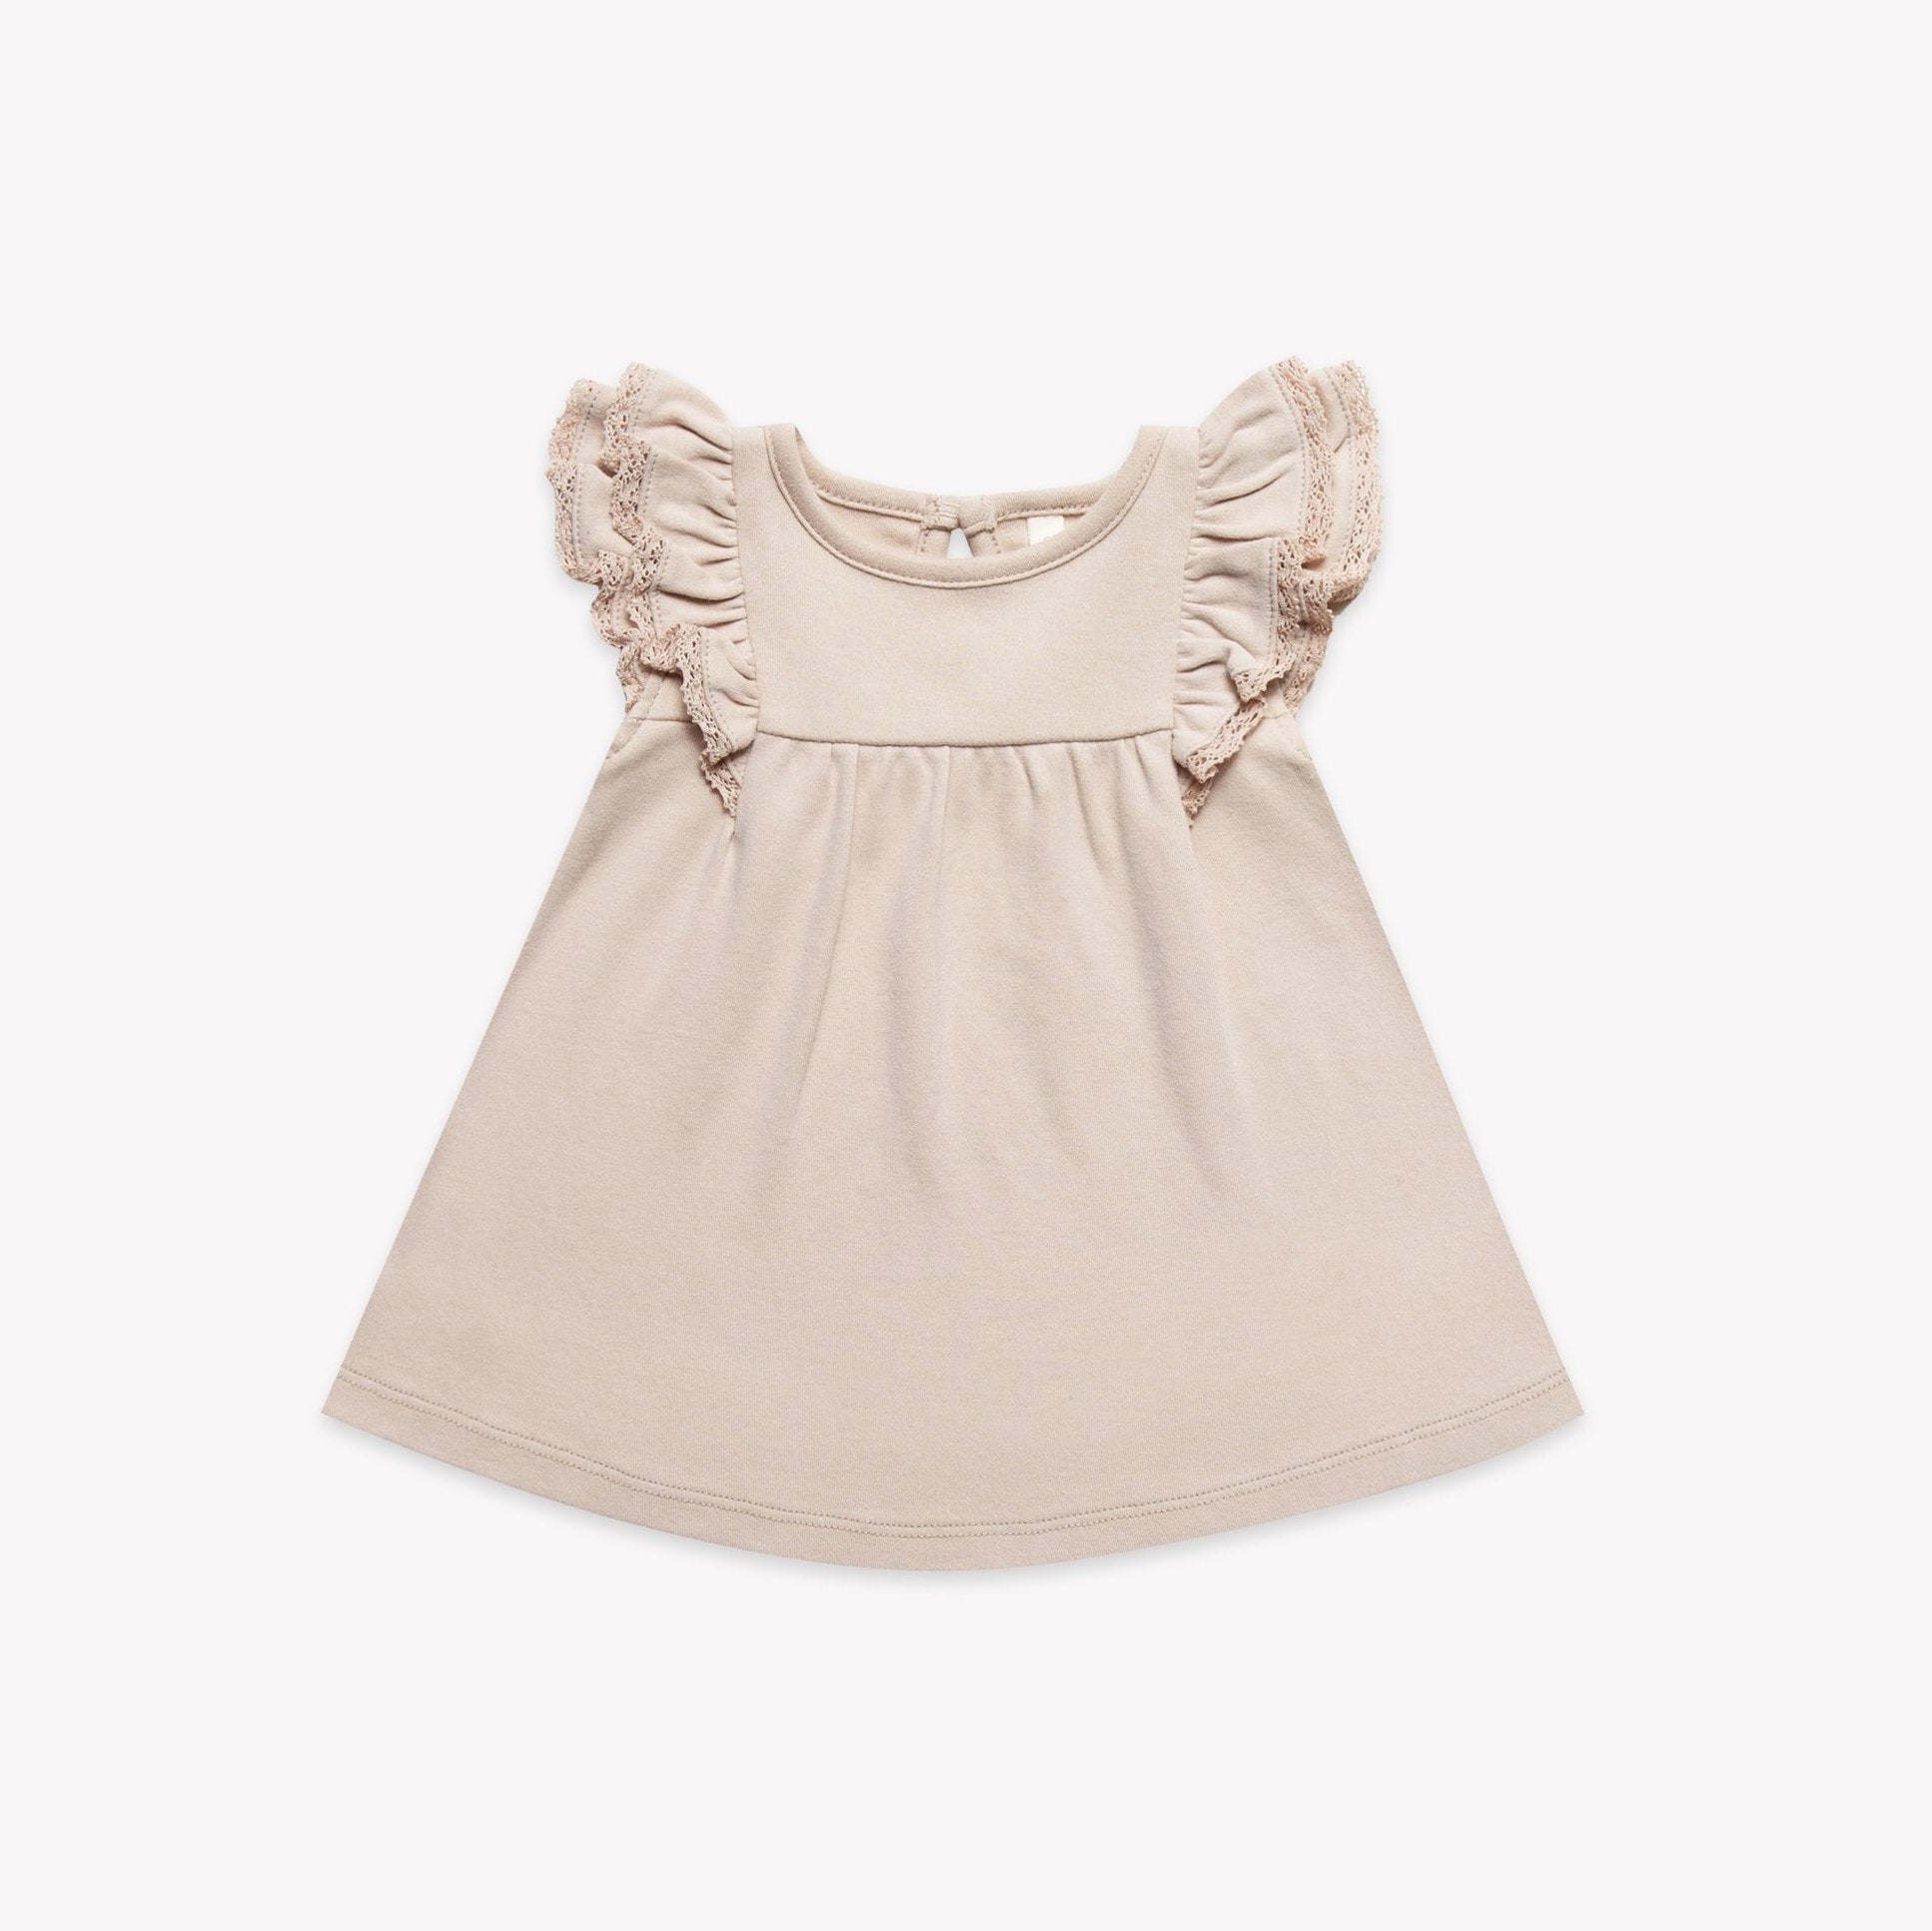 Quincy Mae organic cotton short-sleeve flutter dress rose